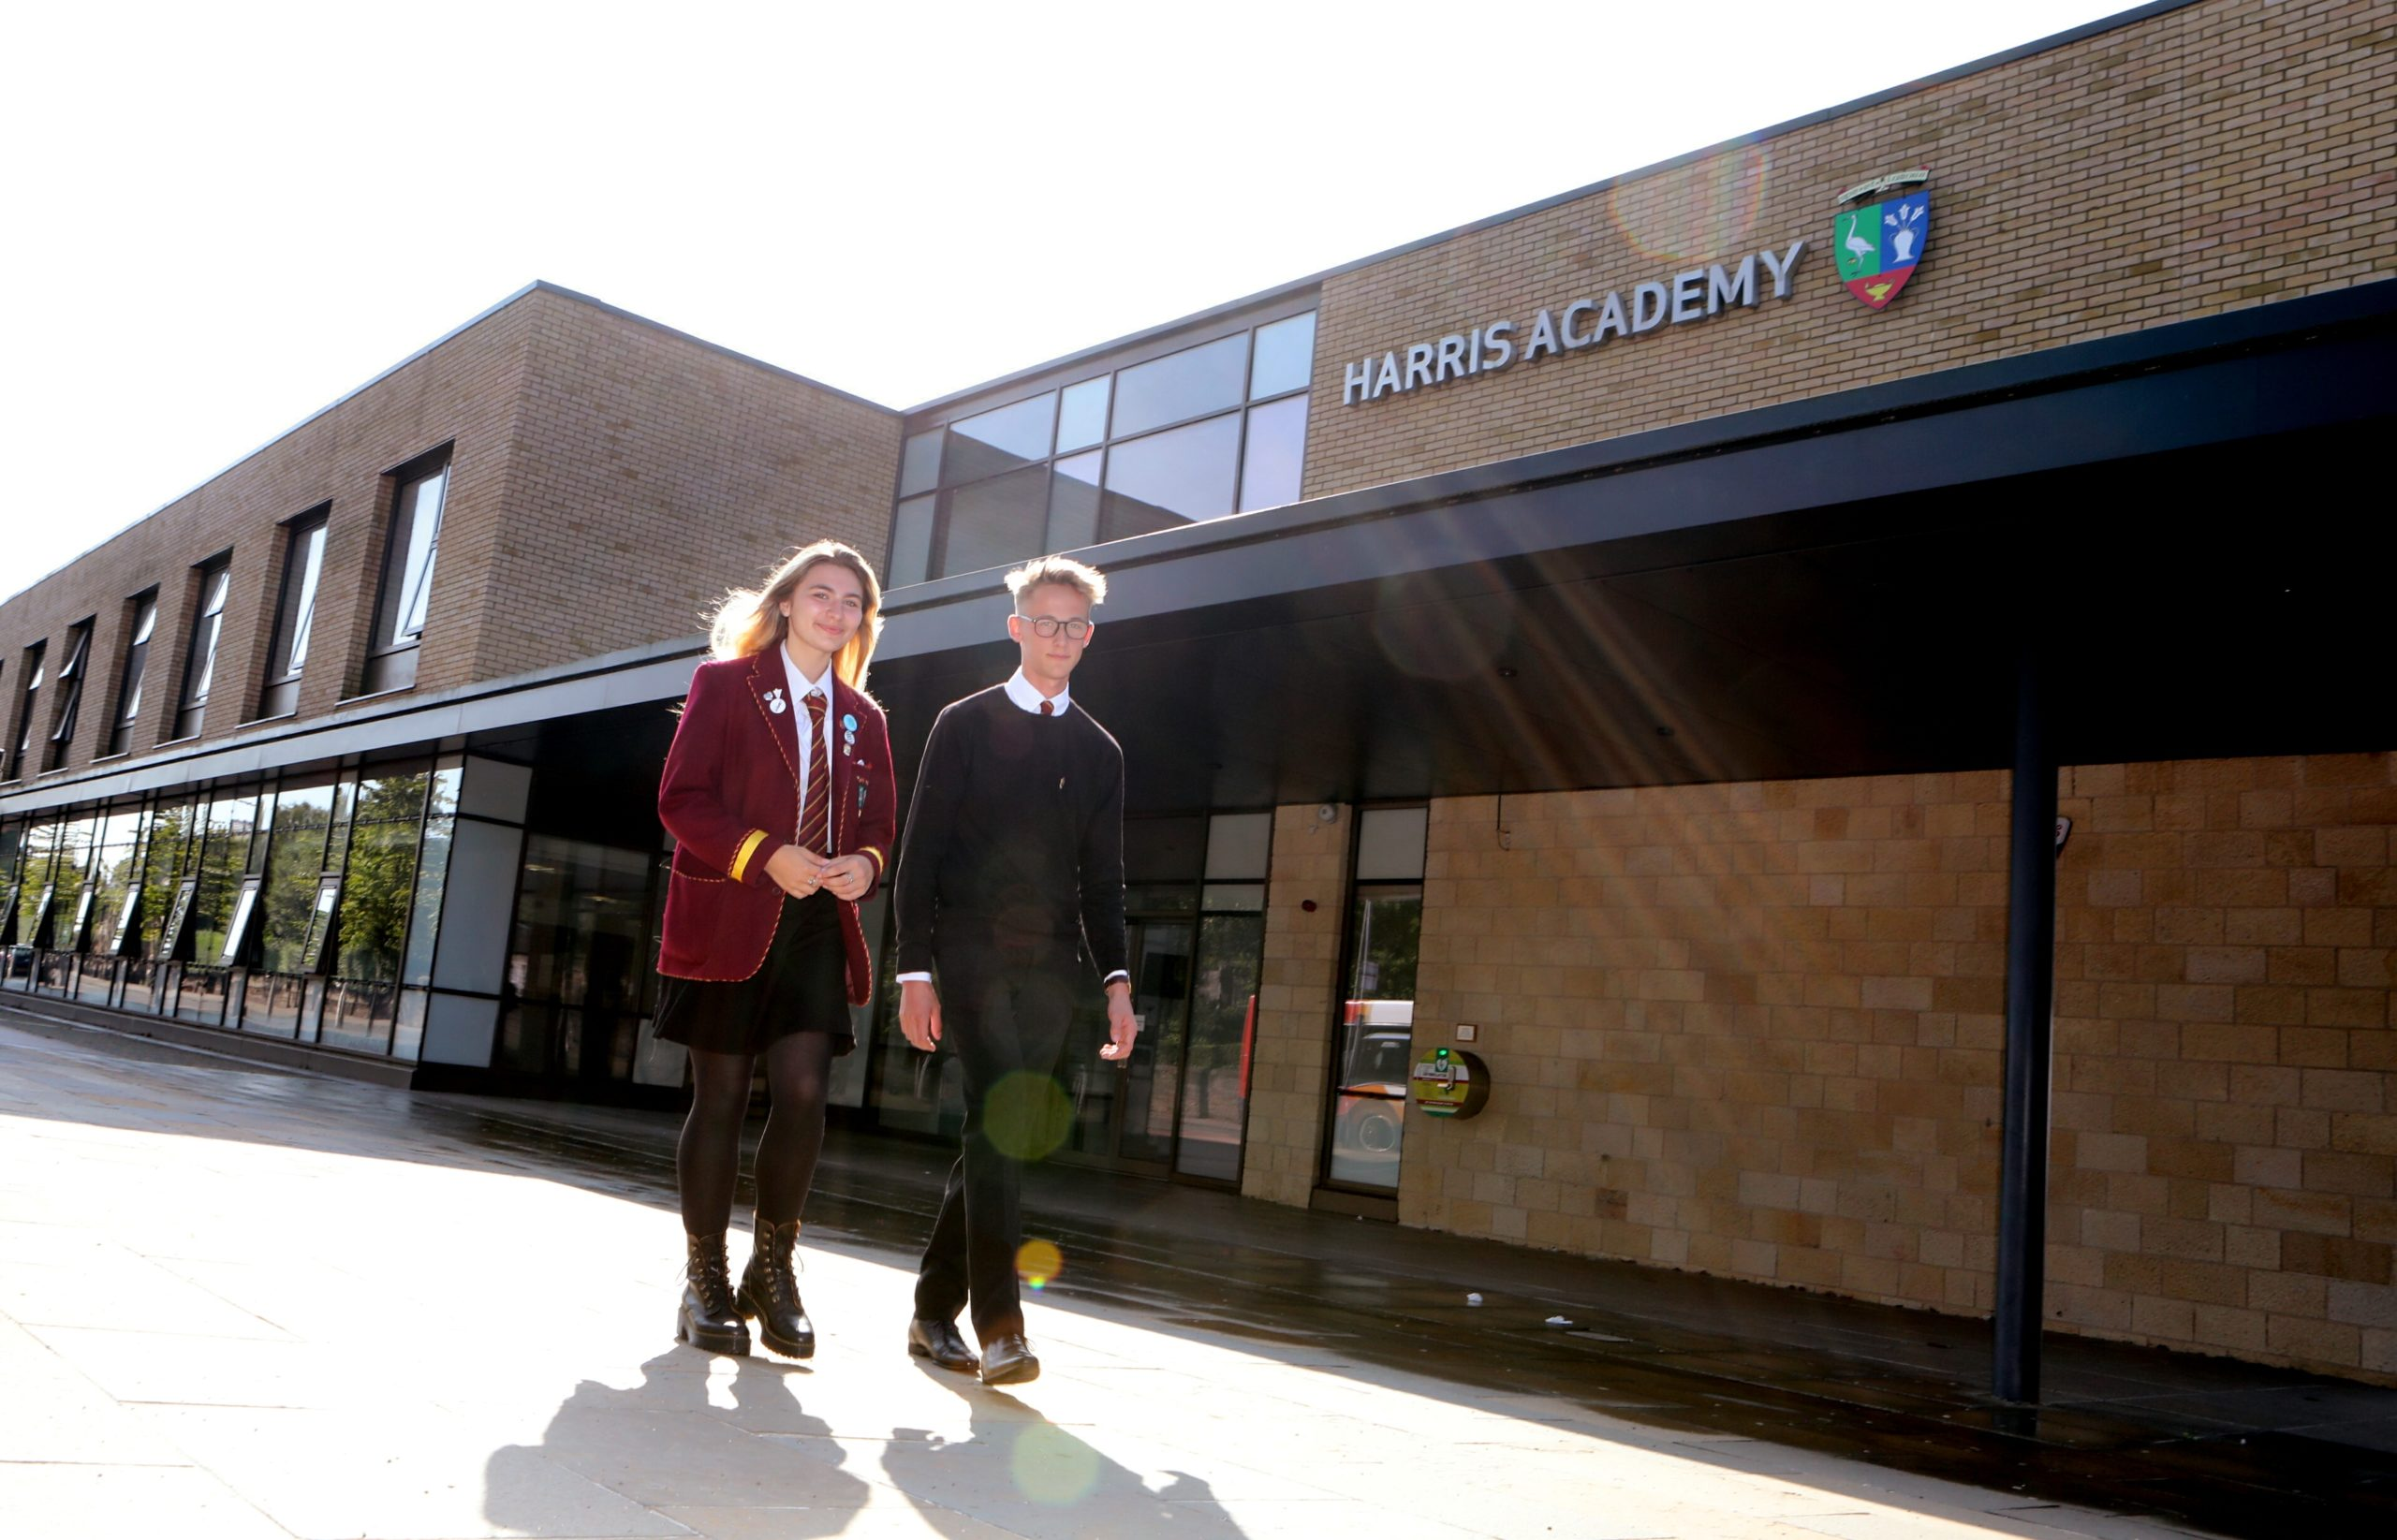 Harris Academy pupils Lucy Young and Jamie Cruickshank.